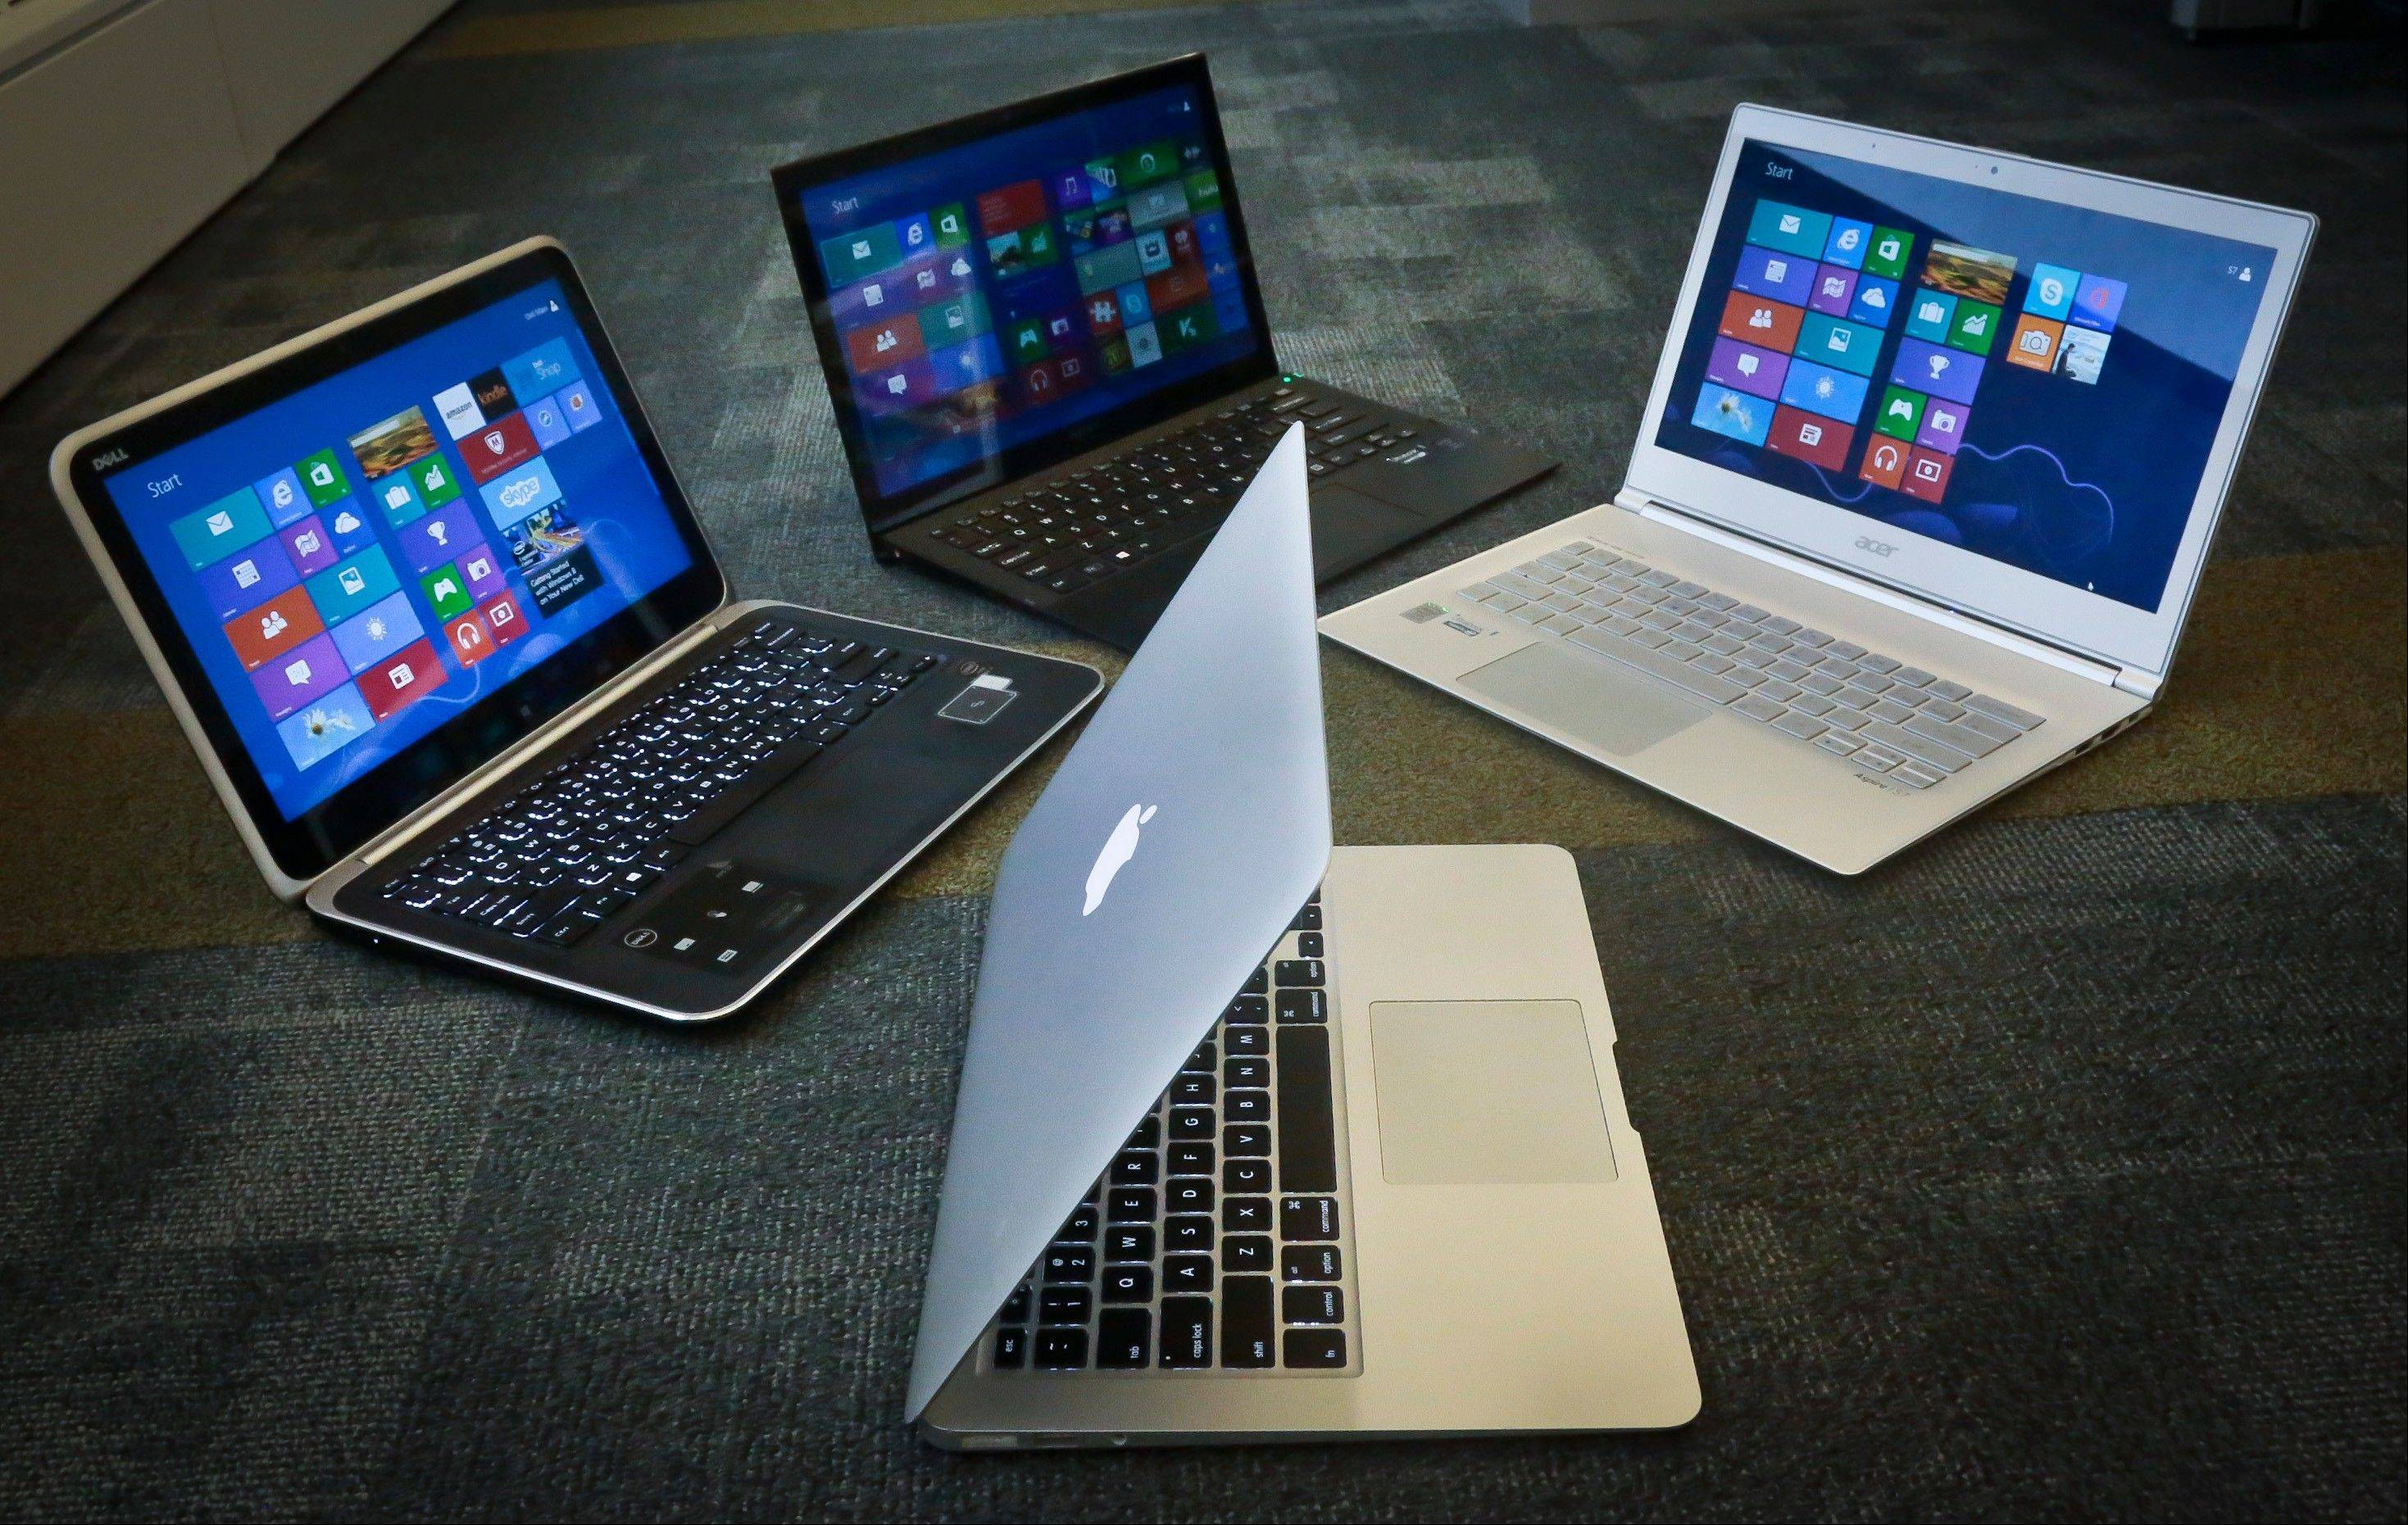 A MacBook Air from Apple, bottom center, a Vaio Pro 13 from Sony, top left, an Aspire S7 from Acer, center, and an XPS 12 from Dell, right. Best Buy is offering $100 off Apple iMacs and $20 off Beats headphones until Sept. 14.